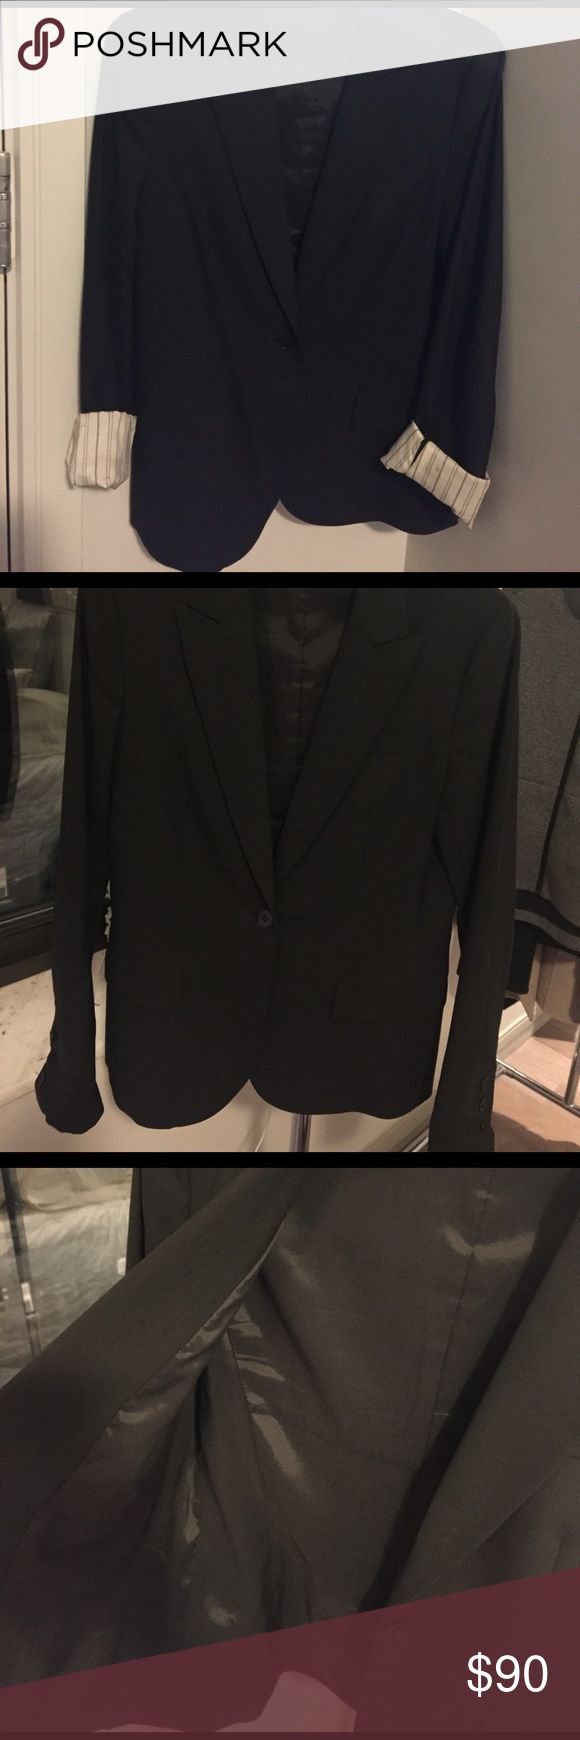 Theory Black Blazer Sleeves Lined With Striped Pattern Lined Inside. Light, barely visible pockets. 96% Wool 4%. Three buttons for each sleeve side, left side missing one button. Excellent blazer for work. Keep it stylish while folding sleeve for striped pattern to be visible! Theory Jackets & Coats Blazers